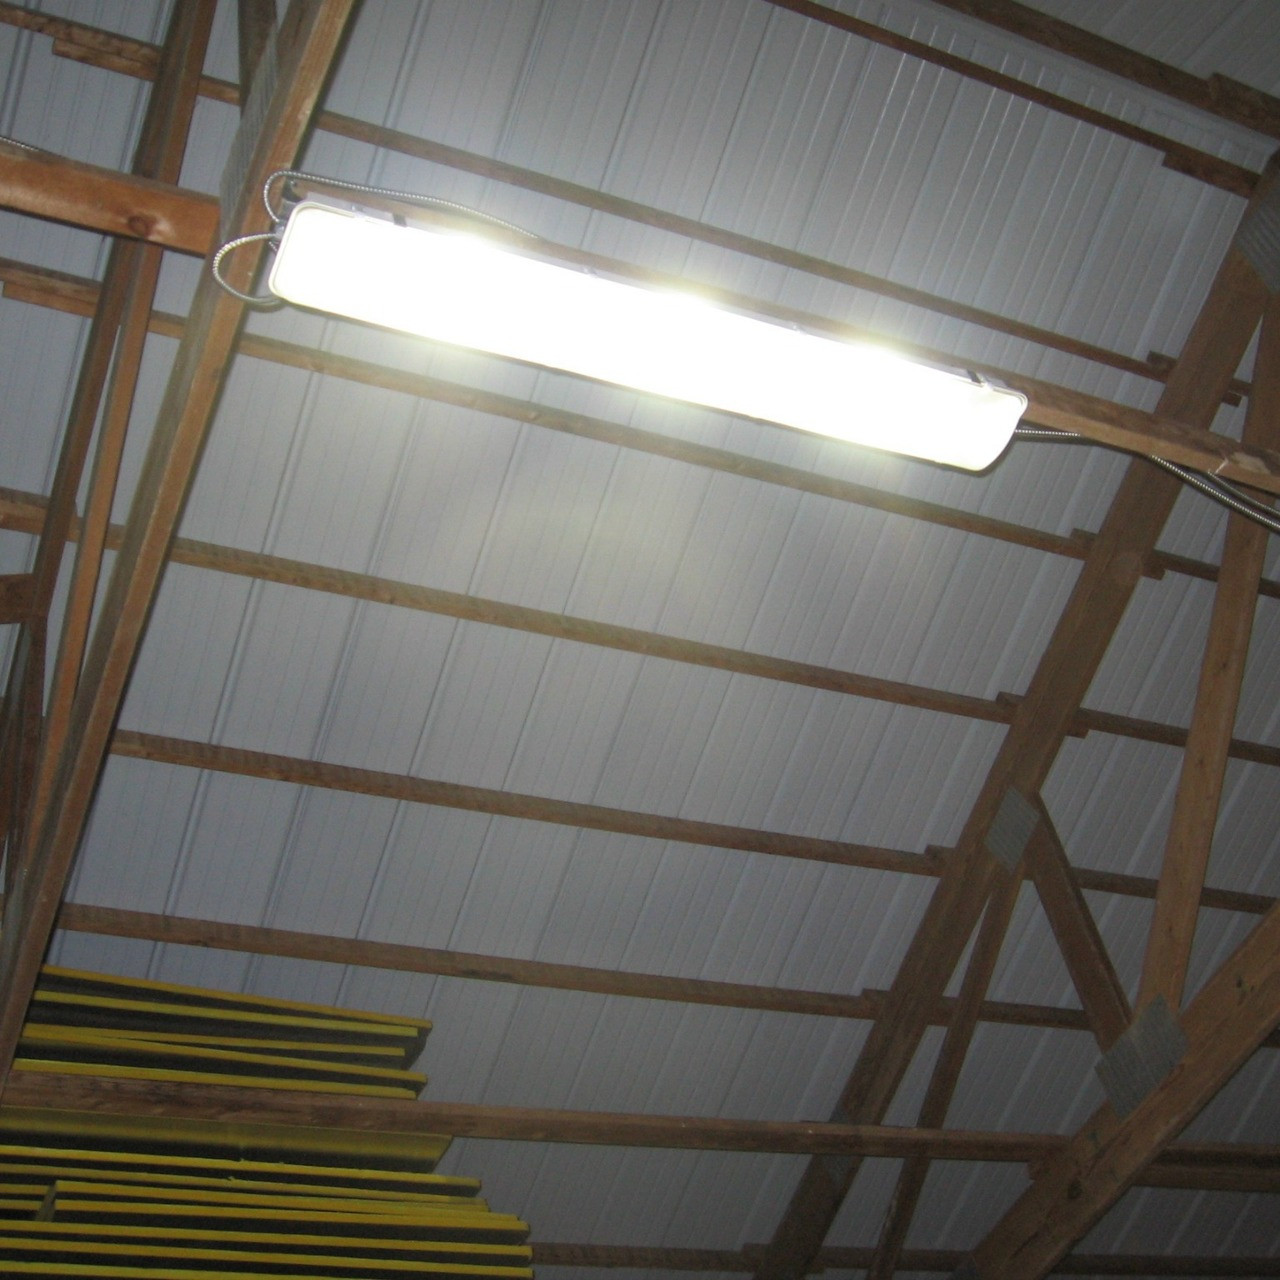 Light fixtures made in usa 80w led low bay light fixtures mounted on the beams of the lumber warehouse